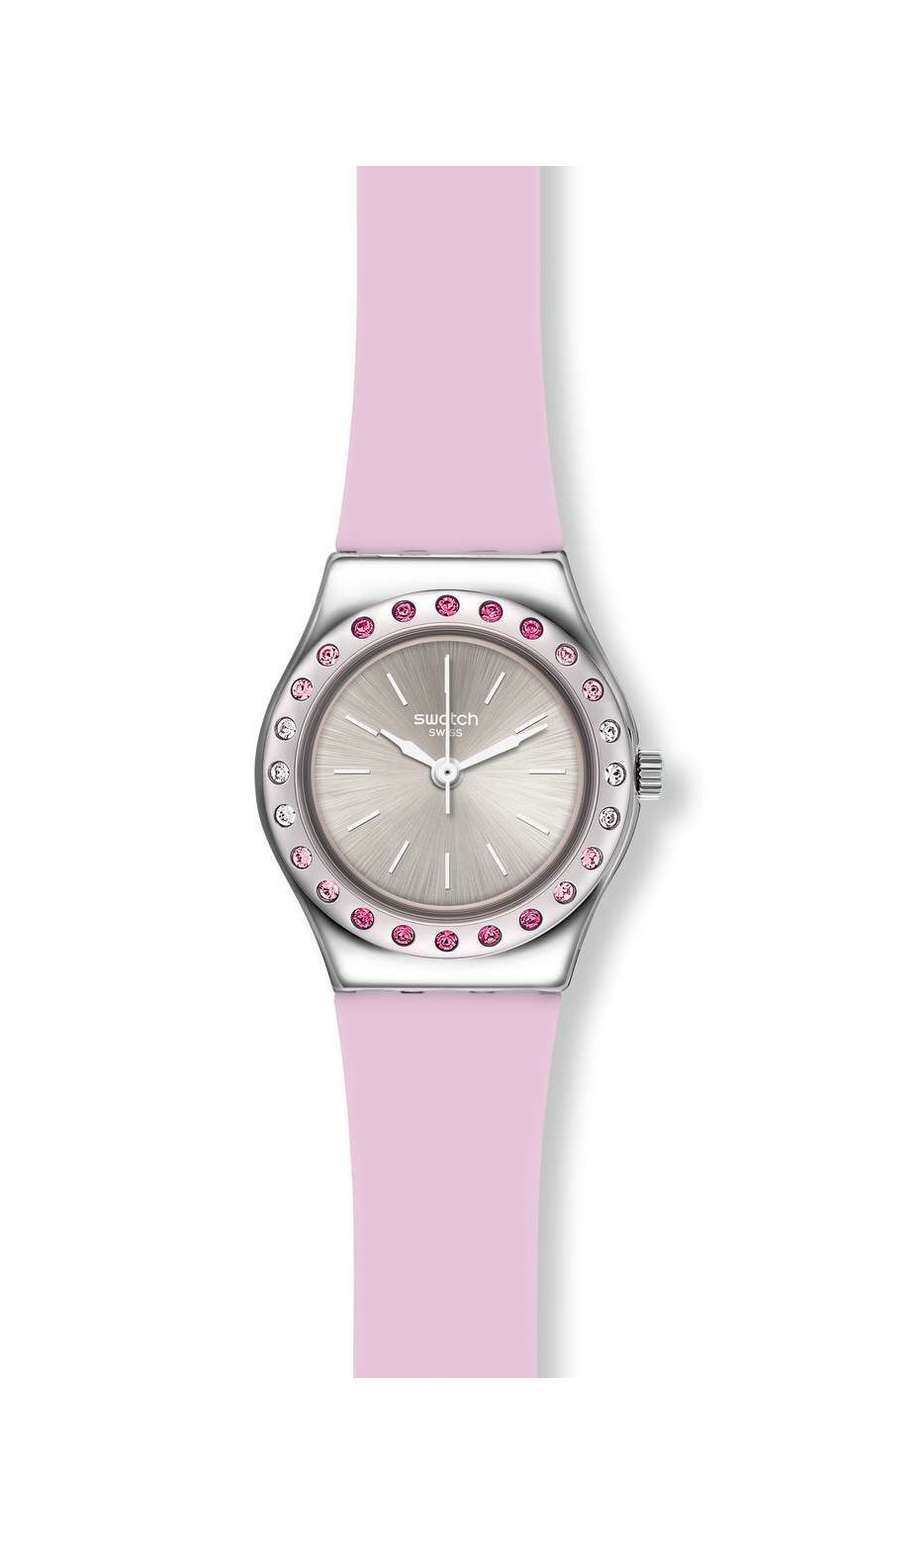 Swatch - CAMAPINK - 1